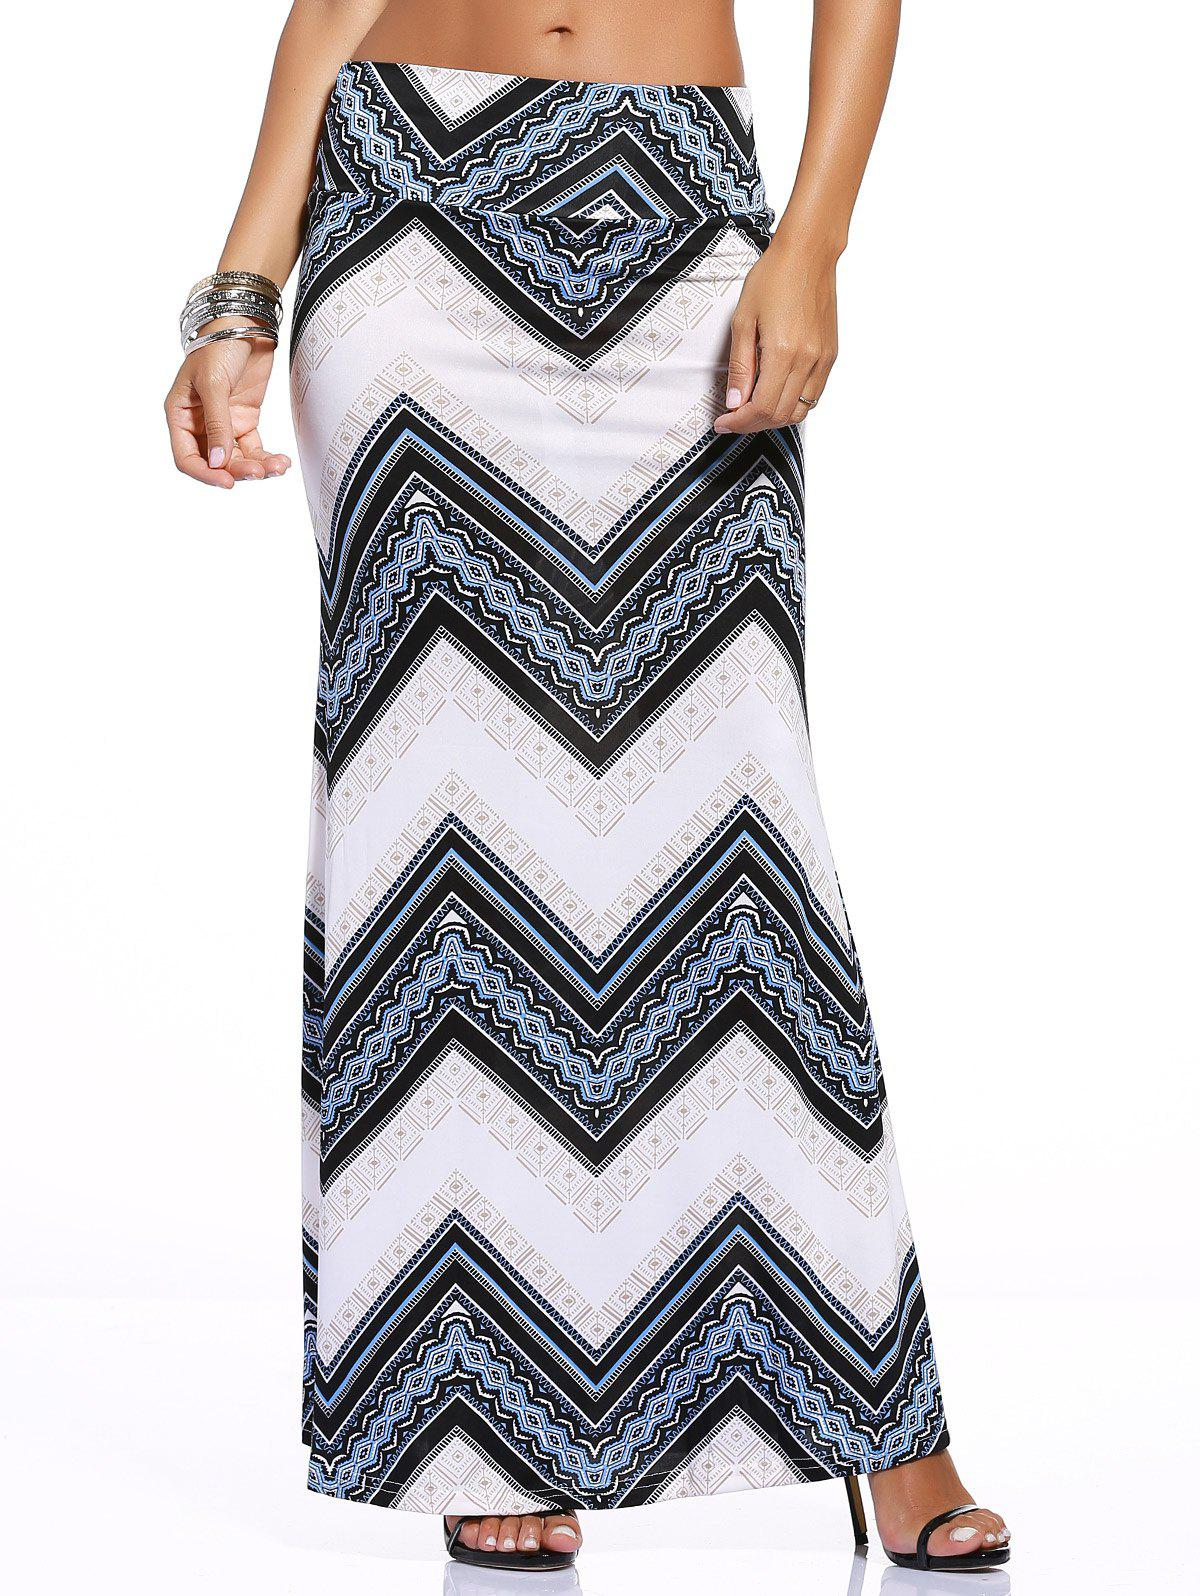 Chic Zigzag Print Over Hip Skirt For Women - BLUE/WHITE 3XL